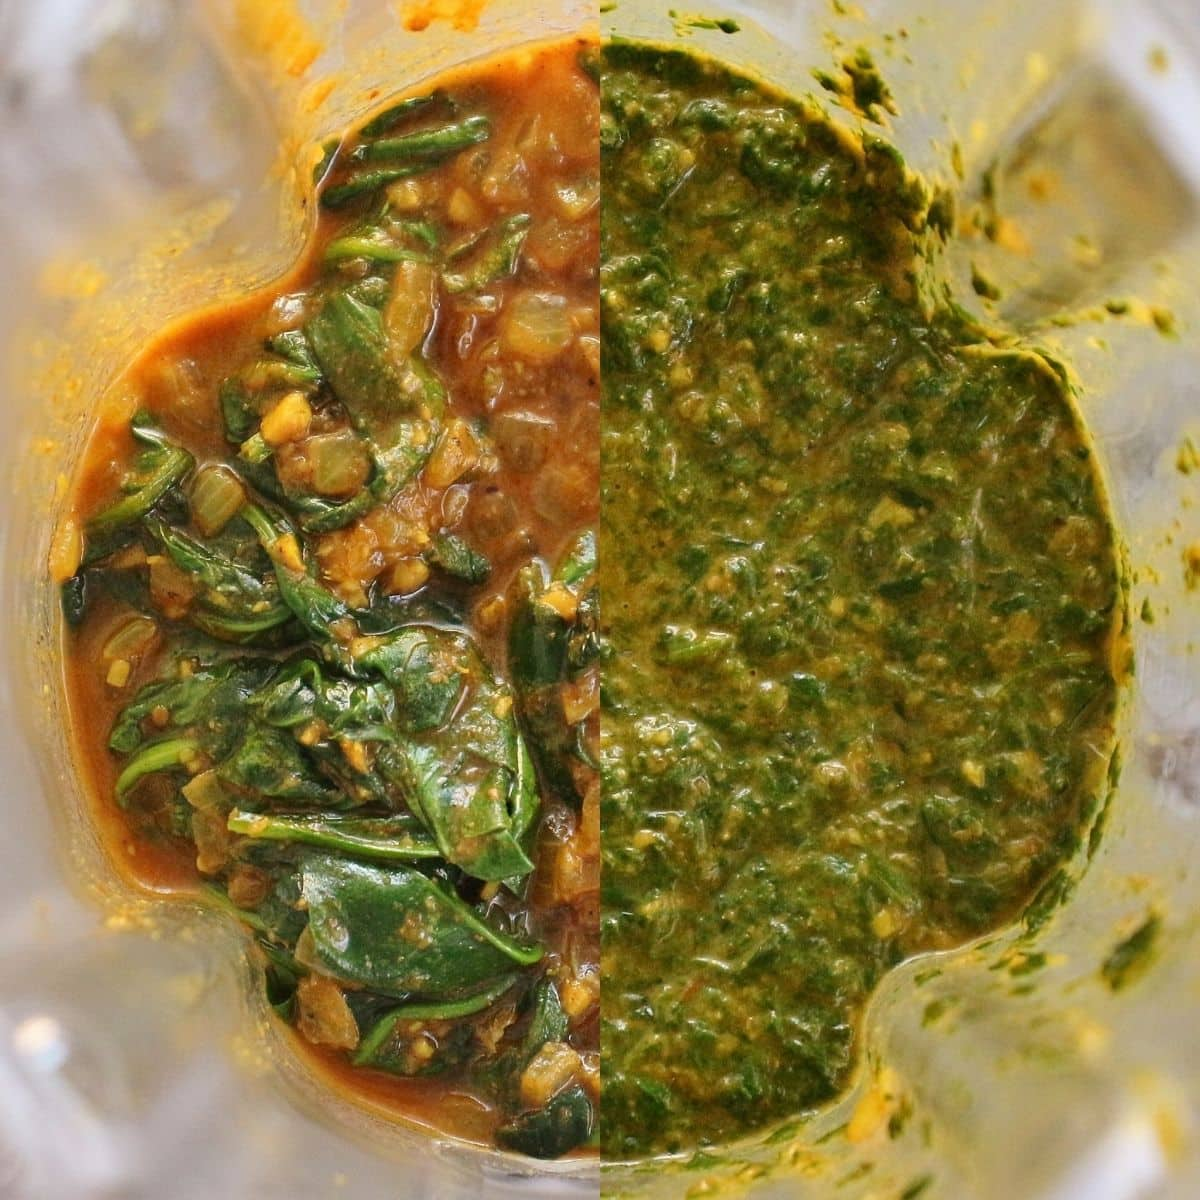 Before and after photos of cooked spinach in spice sauce in a blender.